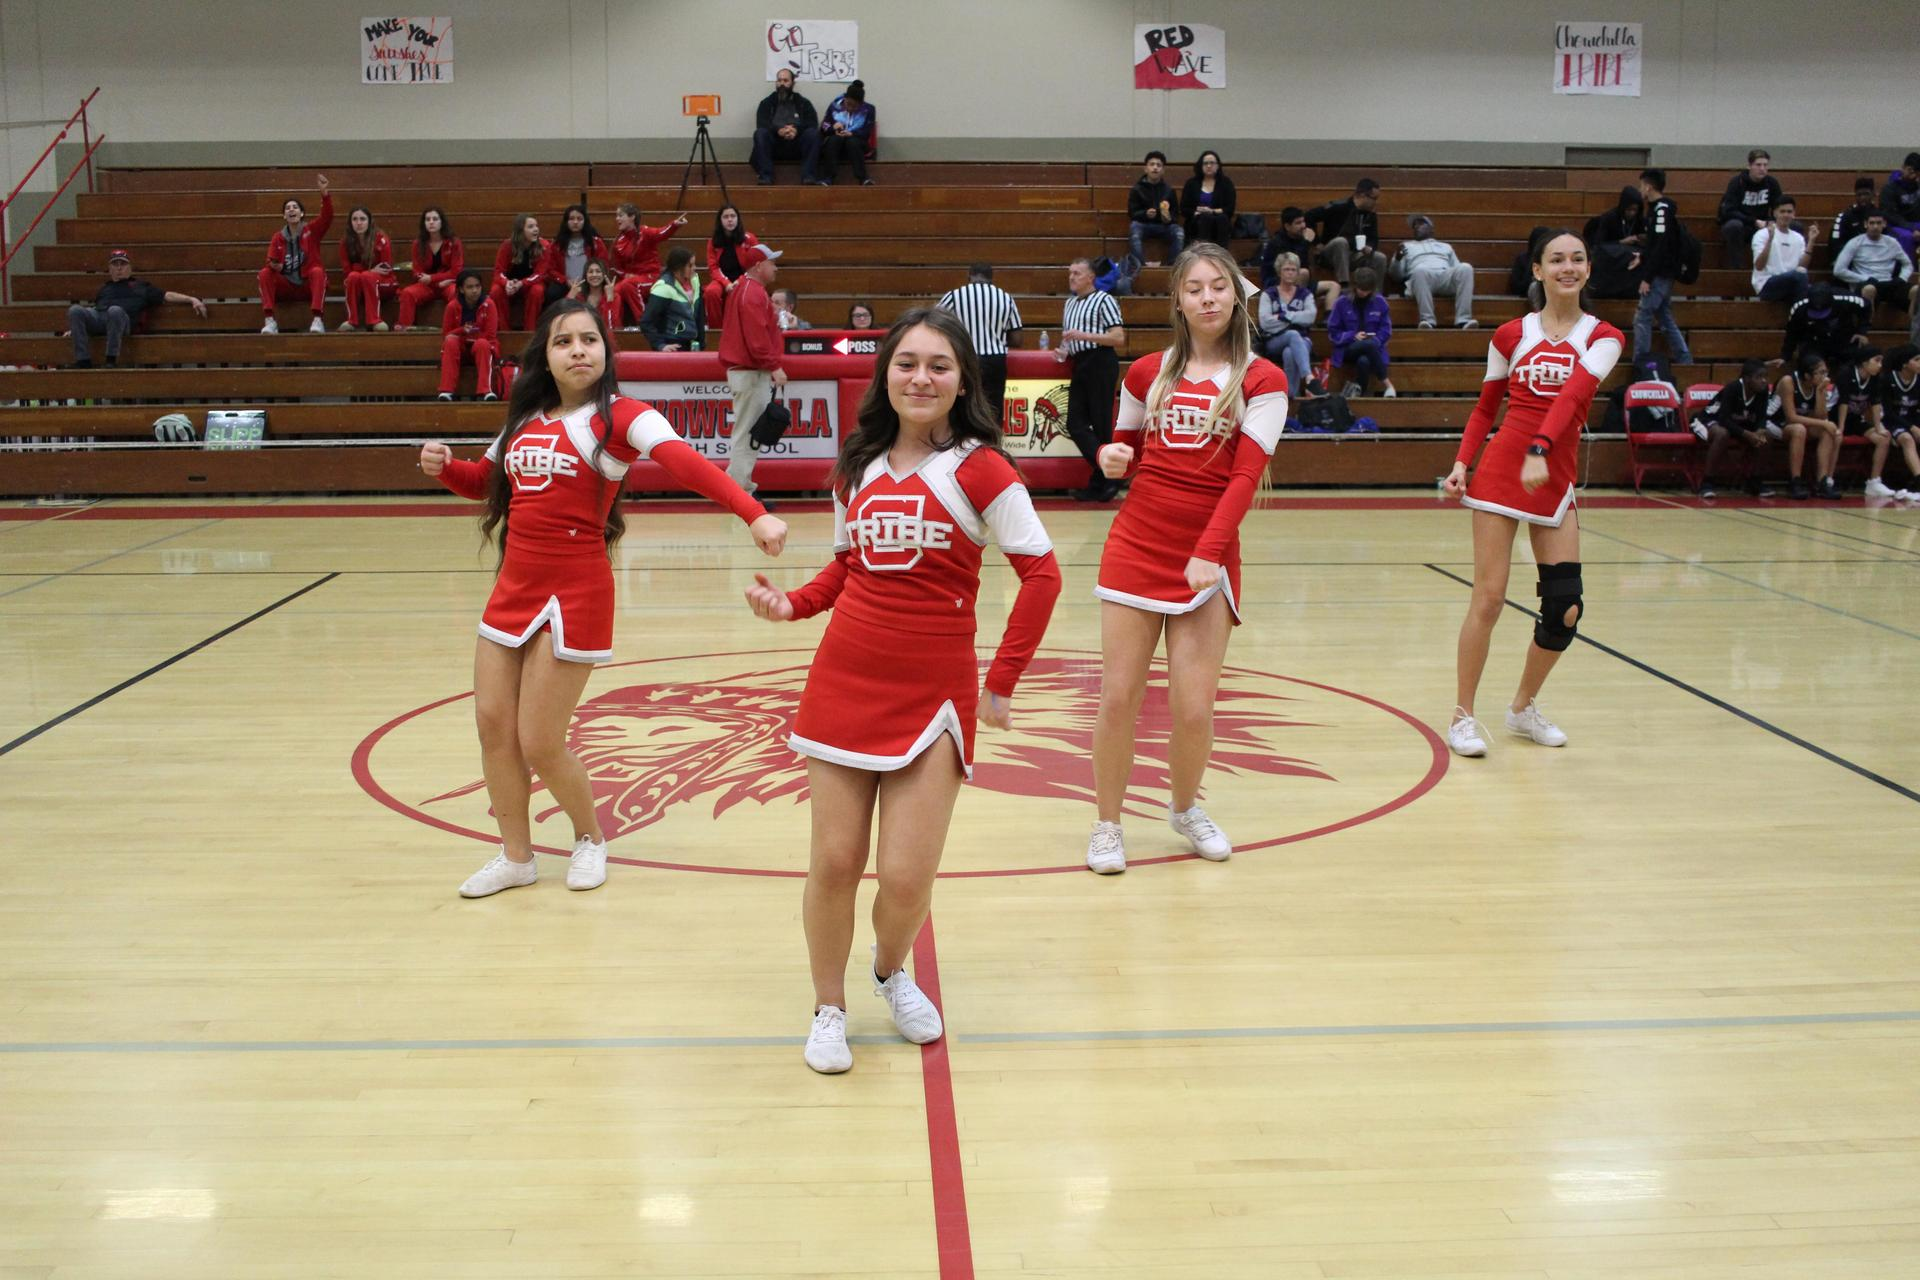 JV Cheer performing for crowd